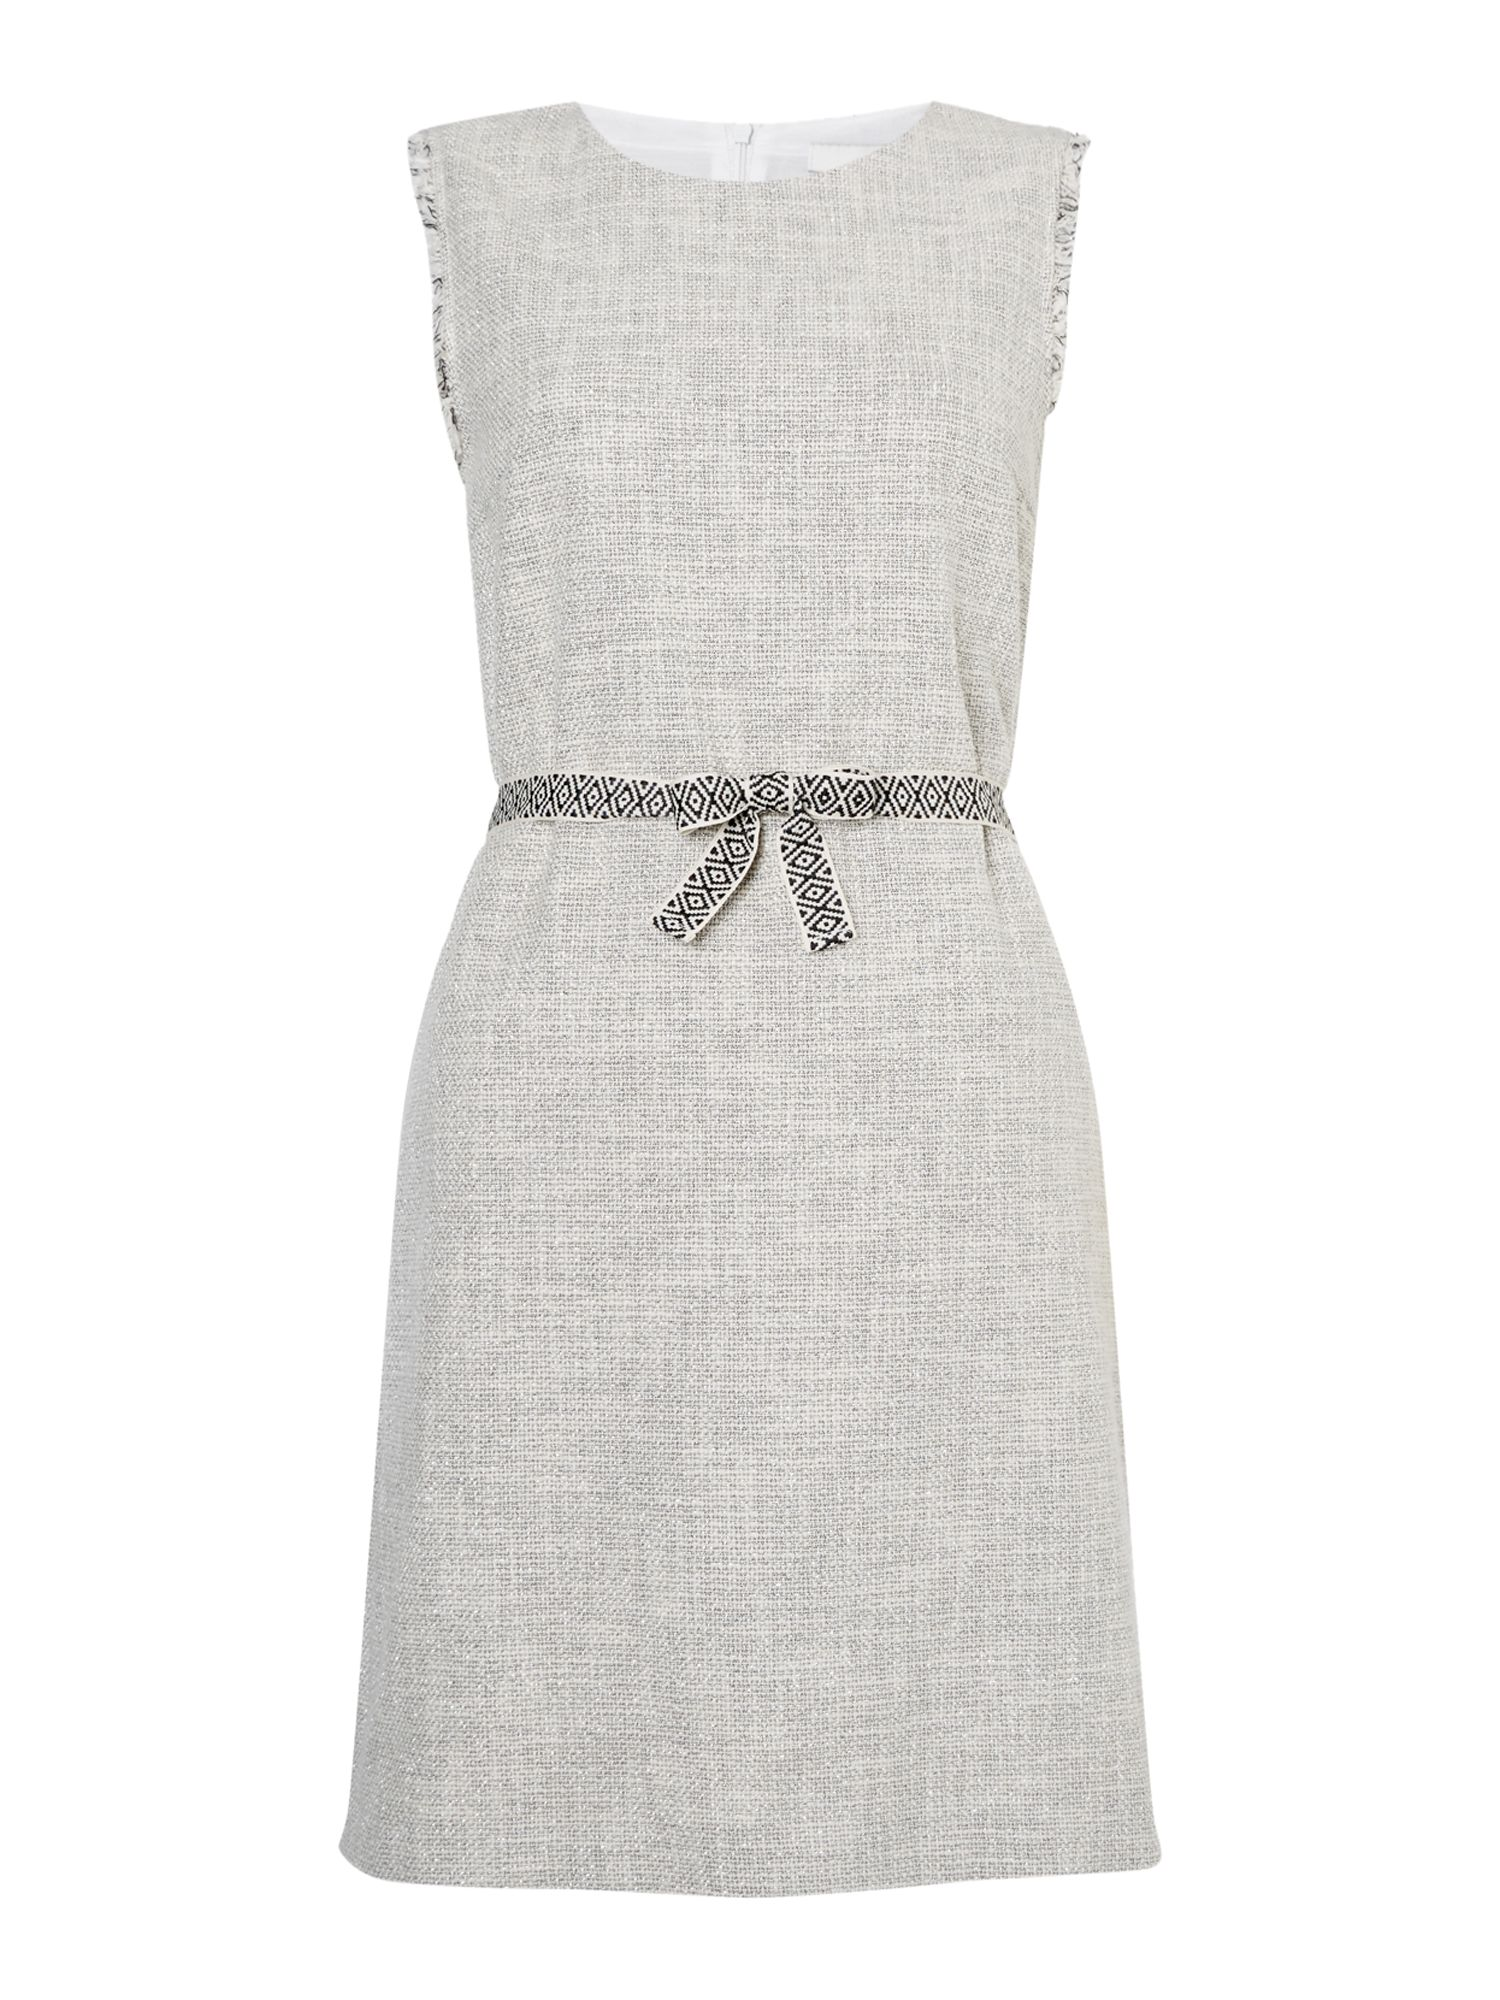 Oui Textured shift dress, Off White